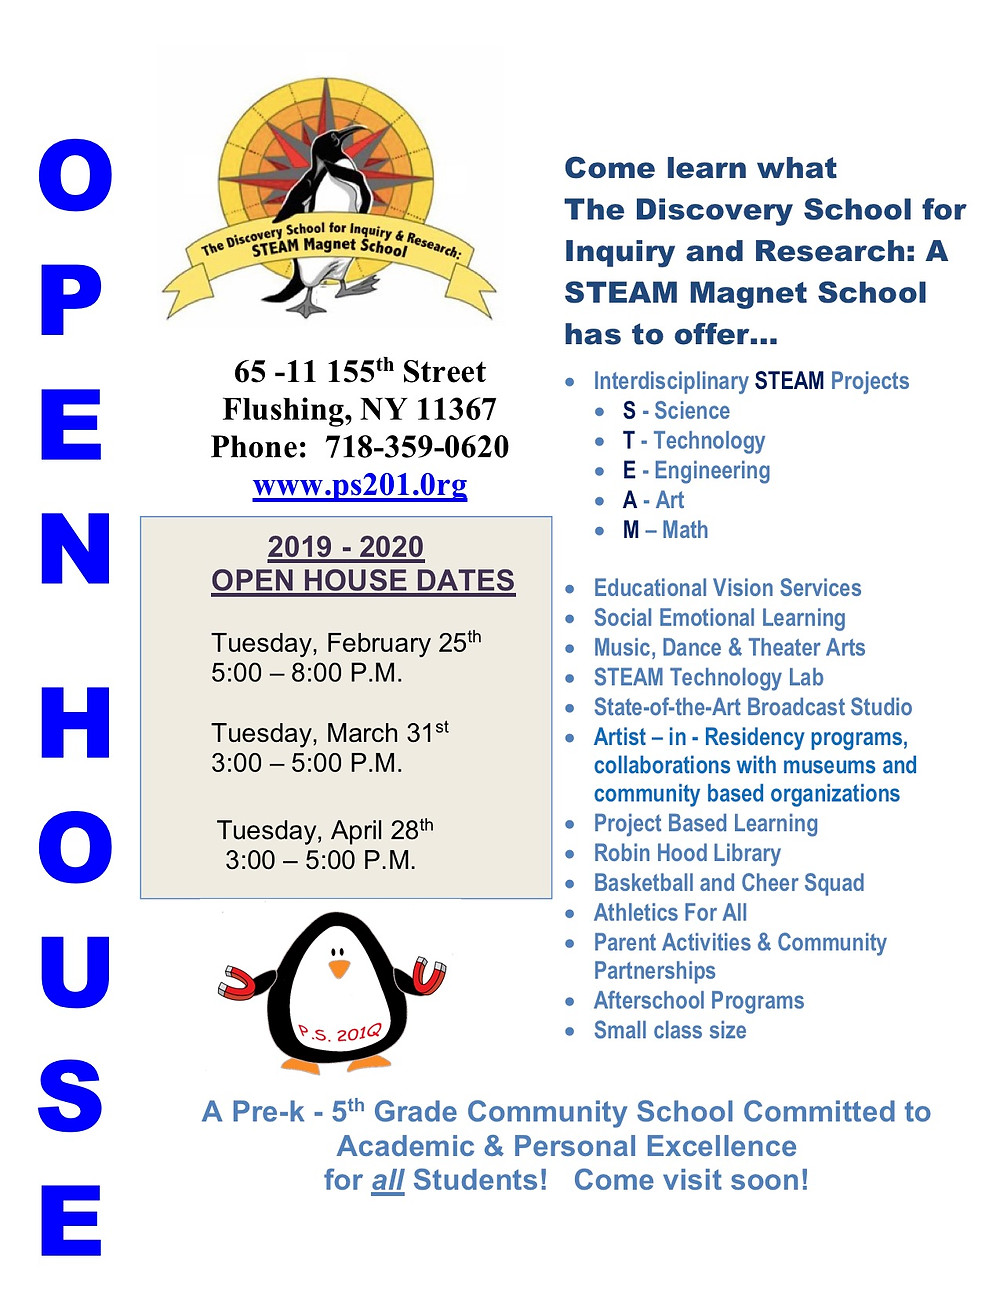 Open House for PS 201 will be held on March 31st and April 28th, from 3:00 to 5:00 PM.